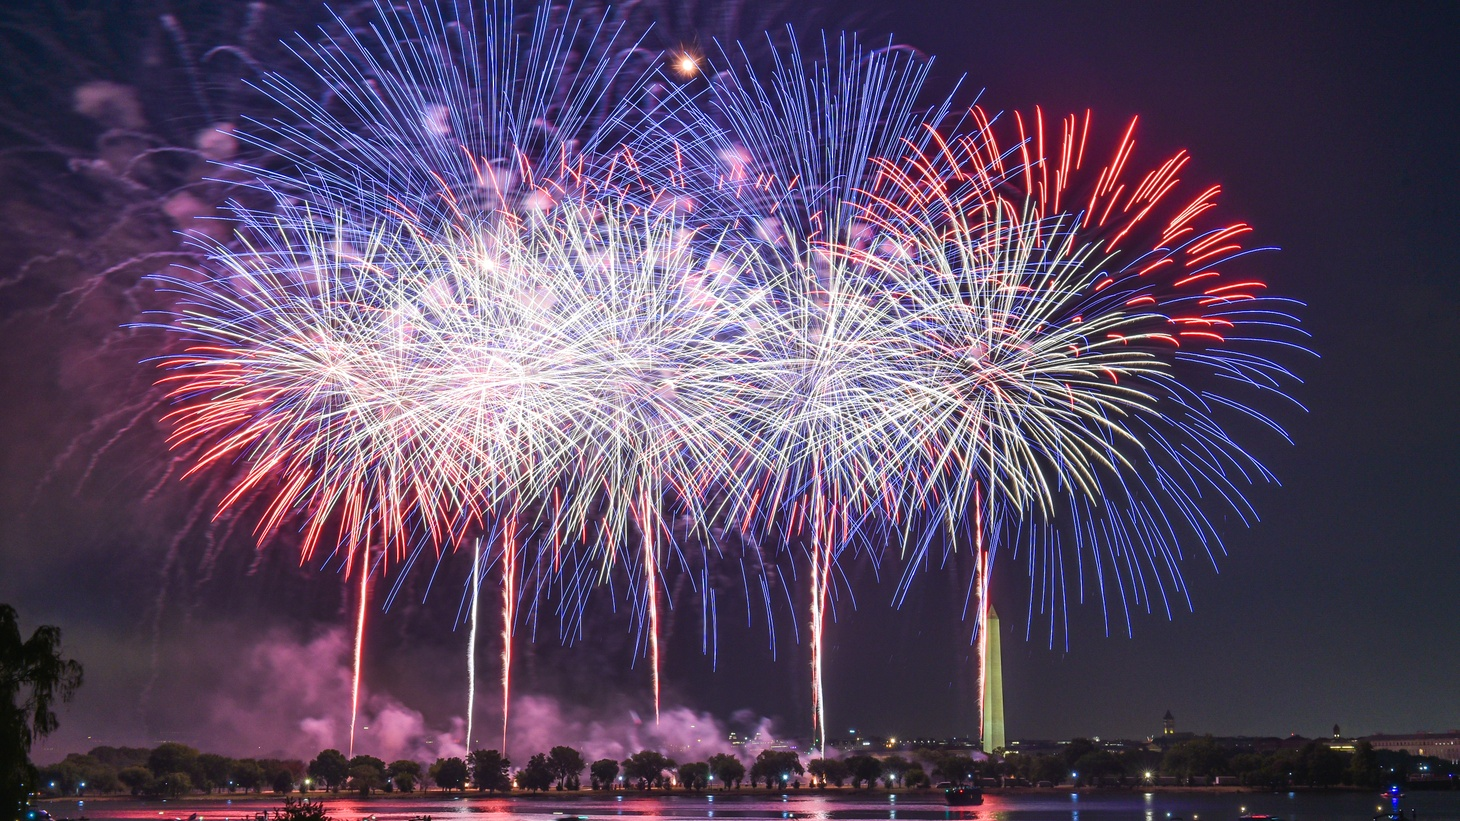 """Fireworks may spark """"flashbacks and traumatic memories"""" for people with mental health conditions, says psychologist Moe Gelbart."""